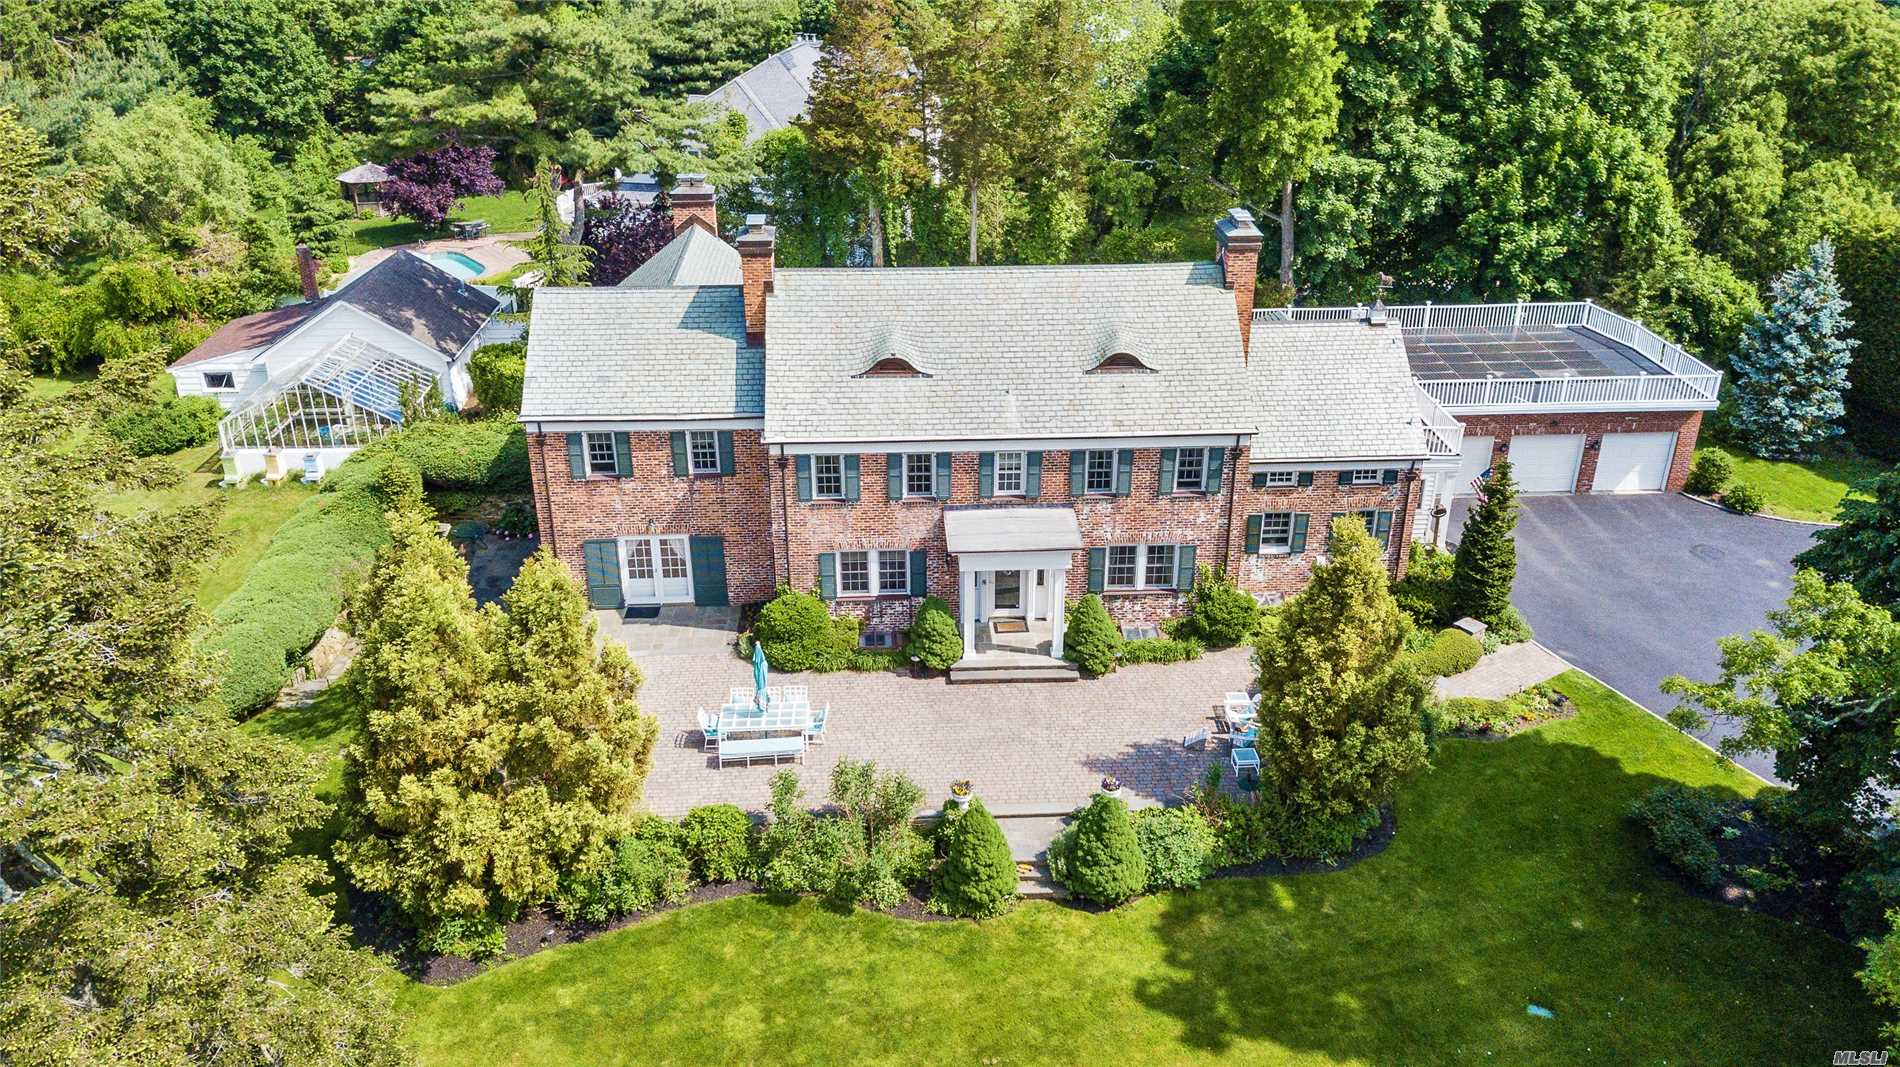 This Captivating Colonial Estate Is Located On A Quiet Cul De Sac. A Stunning Brick Manor Classic Home 4, 800 Square Feet Situated On Two Acres Surrounded By Beautiful Landscaping, Patios, Gunite Pool, Pond And Gazebo. Incredible Details Include Slate Roof, Copper Gutters, 6 Wood Burning Fireplaces, Solar Panels, Heated Three Car Garage, Green House/Barn W Outdoor Shower, Custom Eagle Historic Windows And More. See Separate Upgrade/Improvement Sheet. A Truly Unique And Special Home.